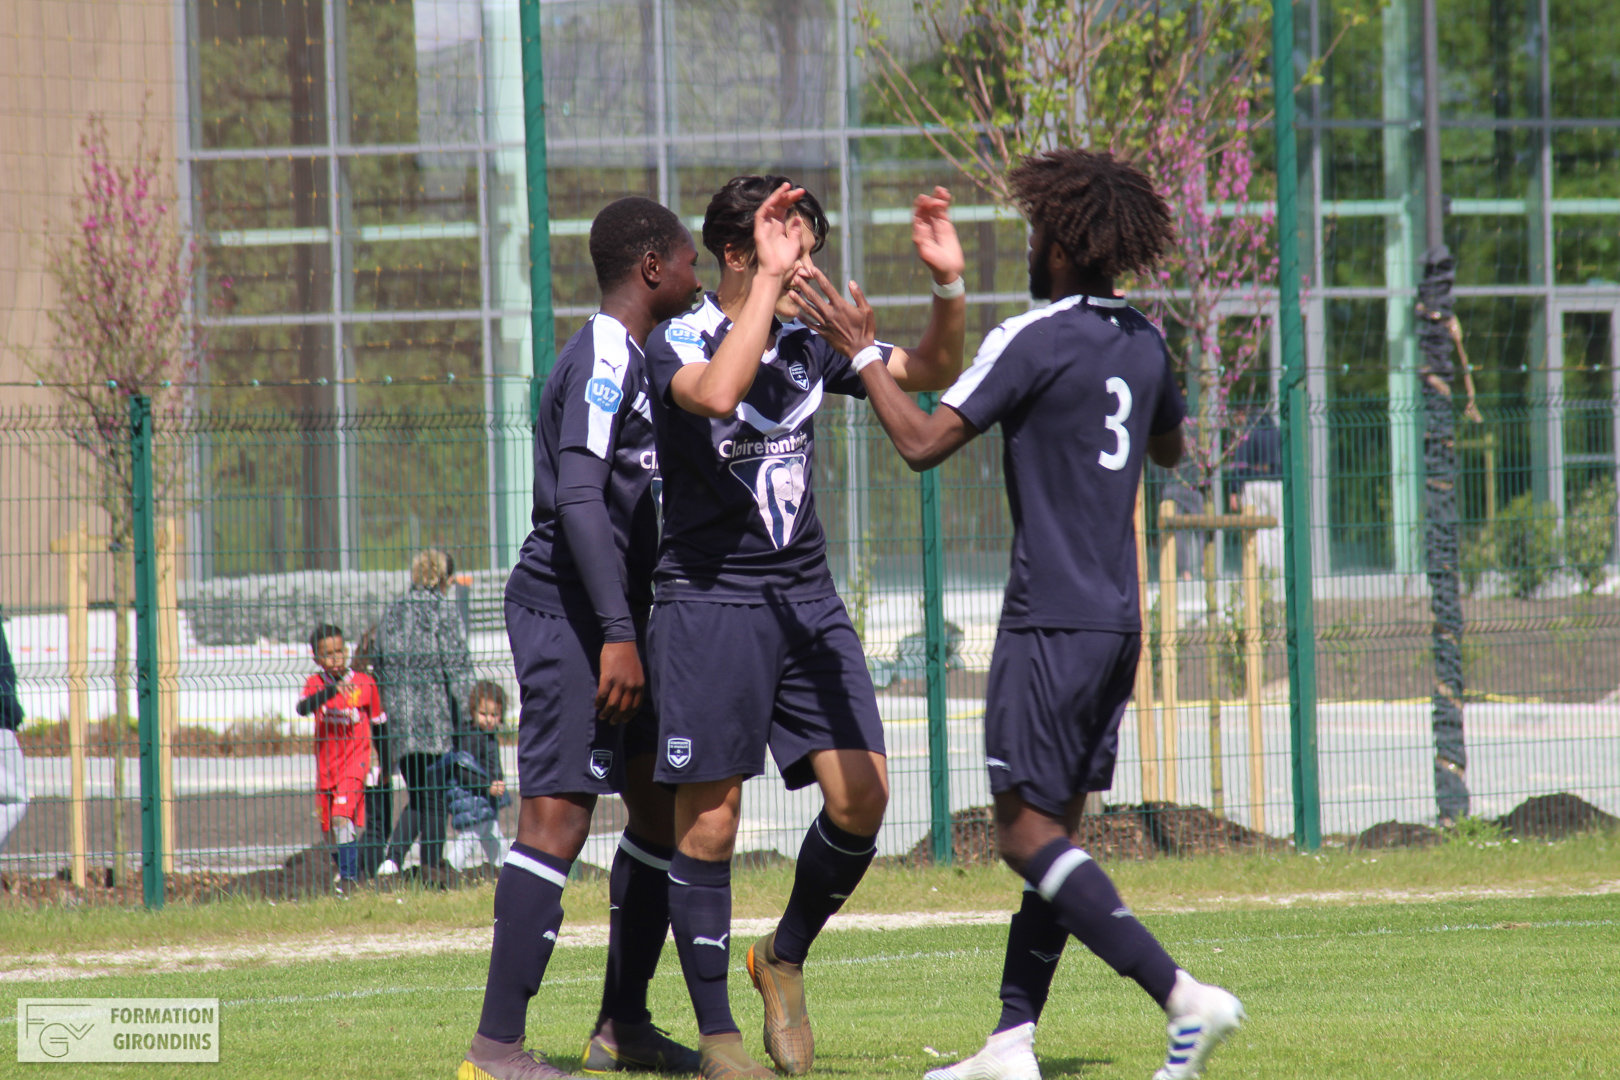 Cfa Girondins : Une belle victoire pour finir - Formation Girondins